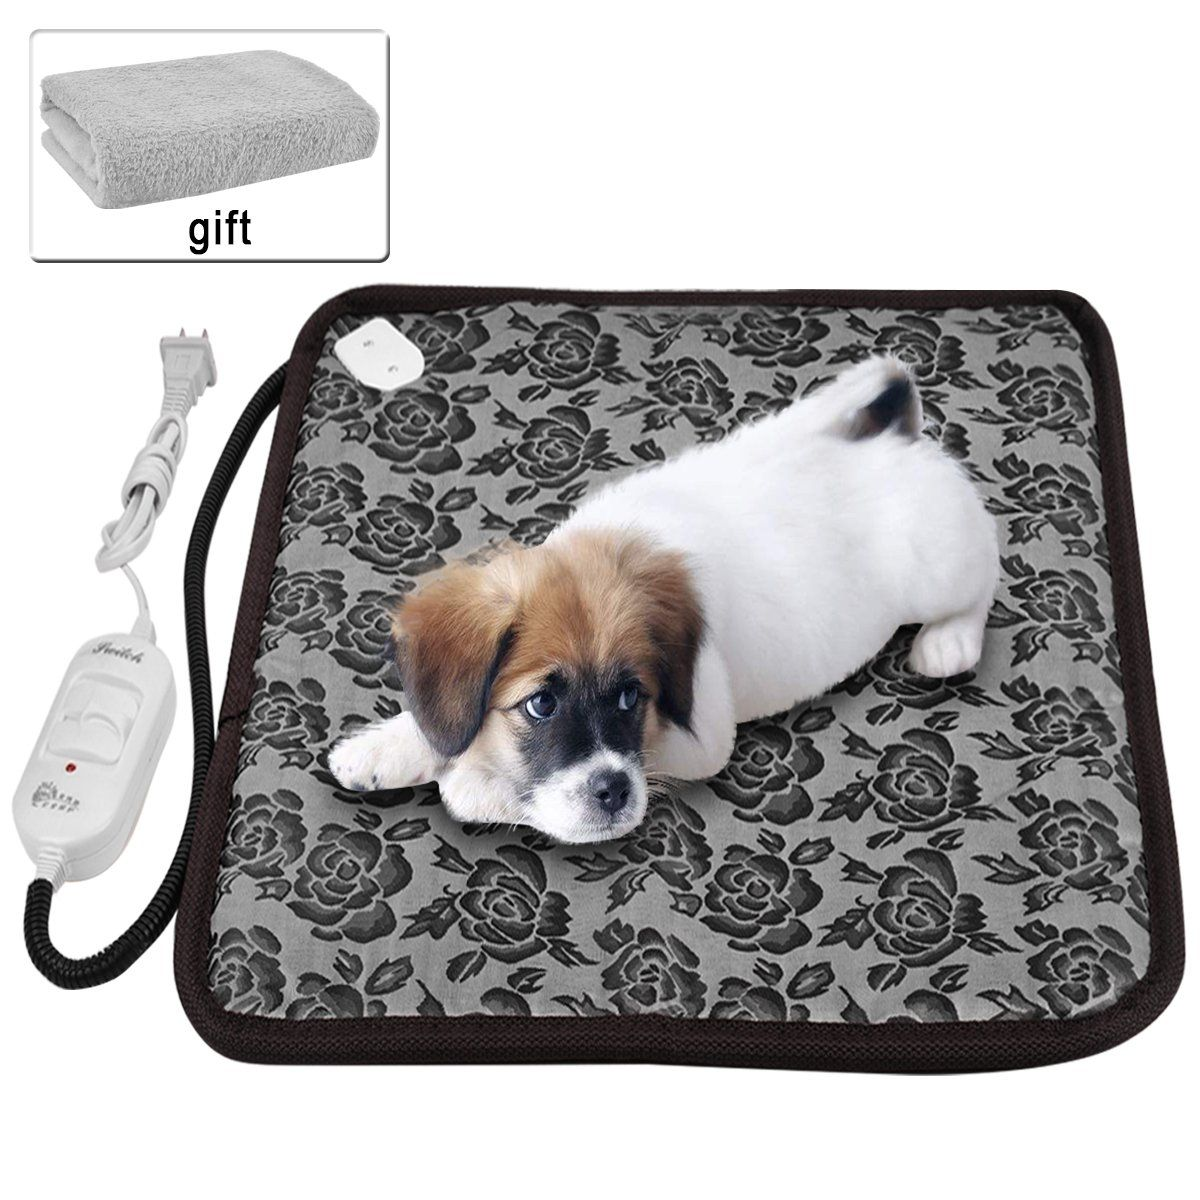 Pet Heating Pad for New Born Puppies and Kitty or Pregnant